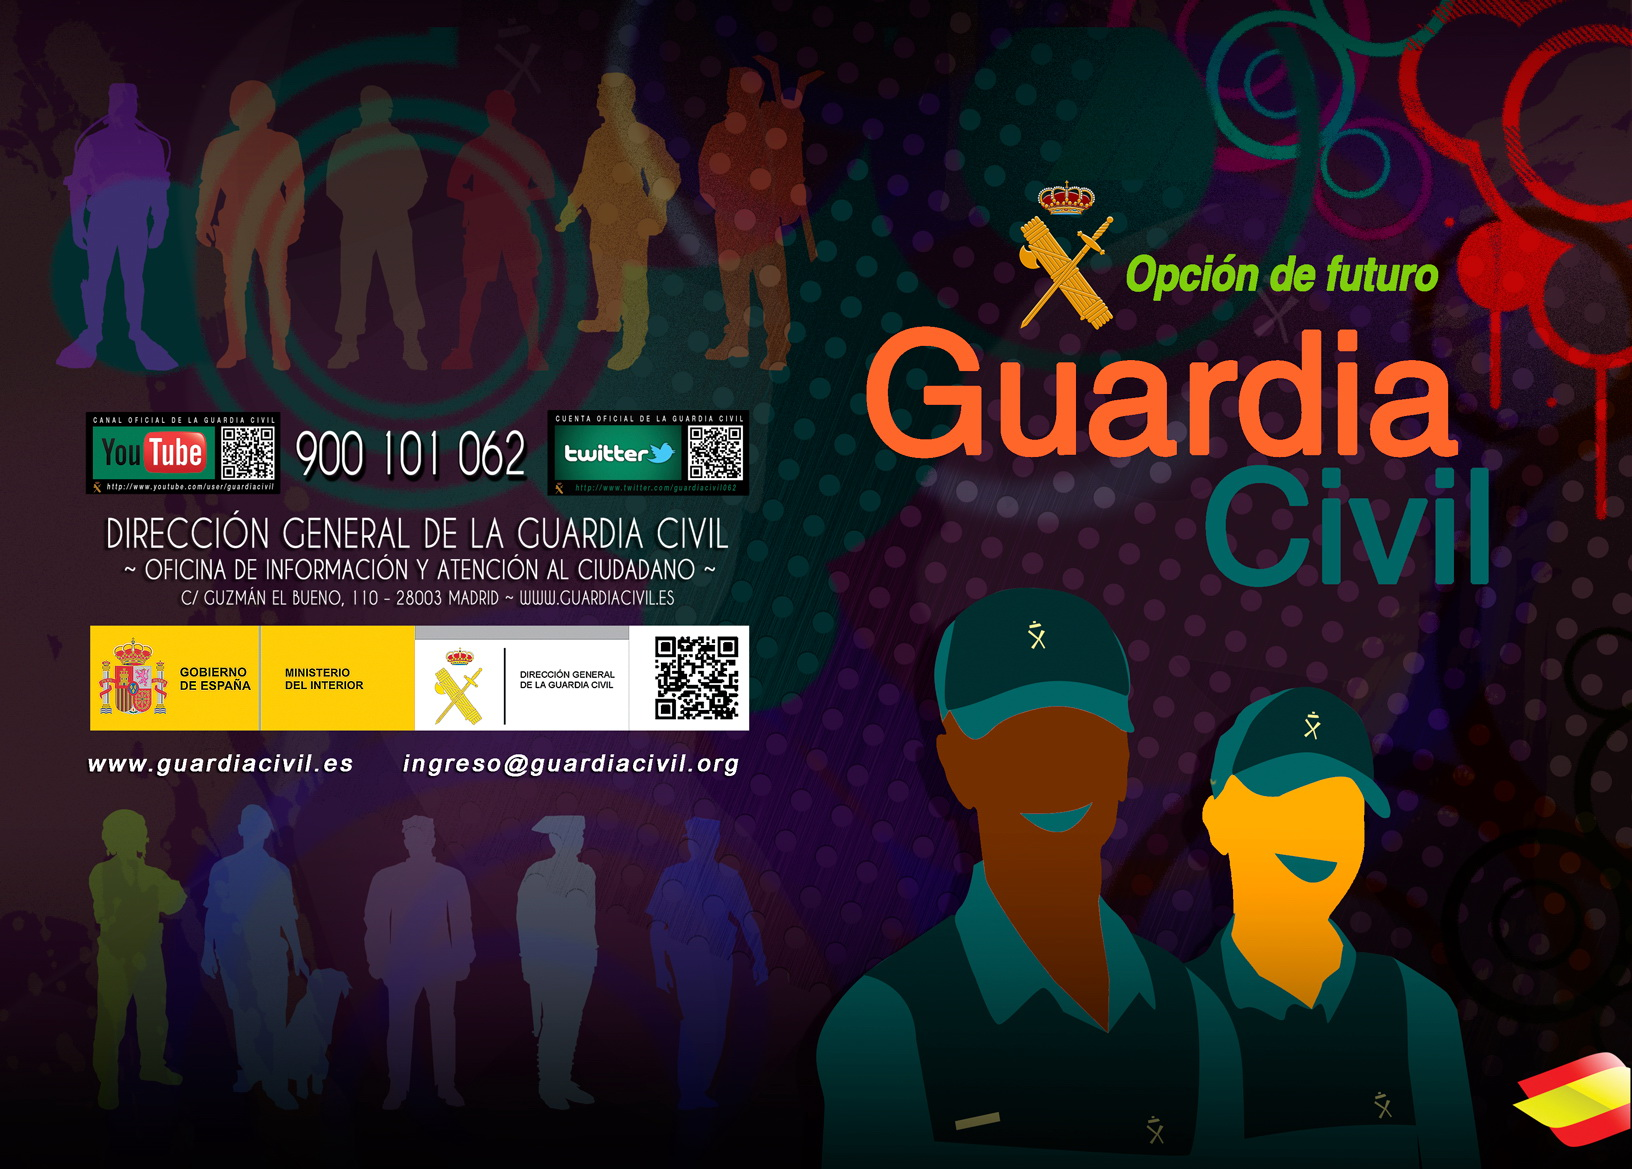 Guardia Civil, opción de futuro 2014